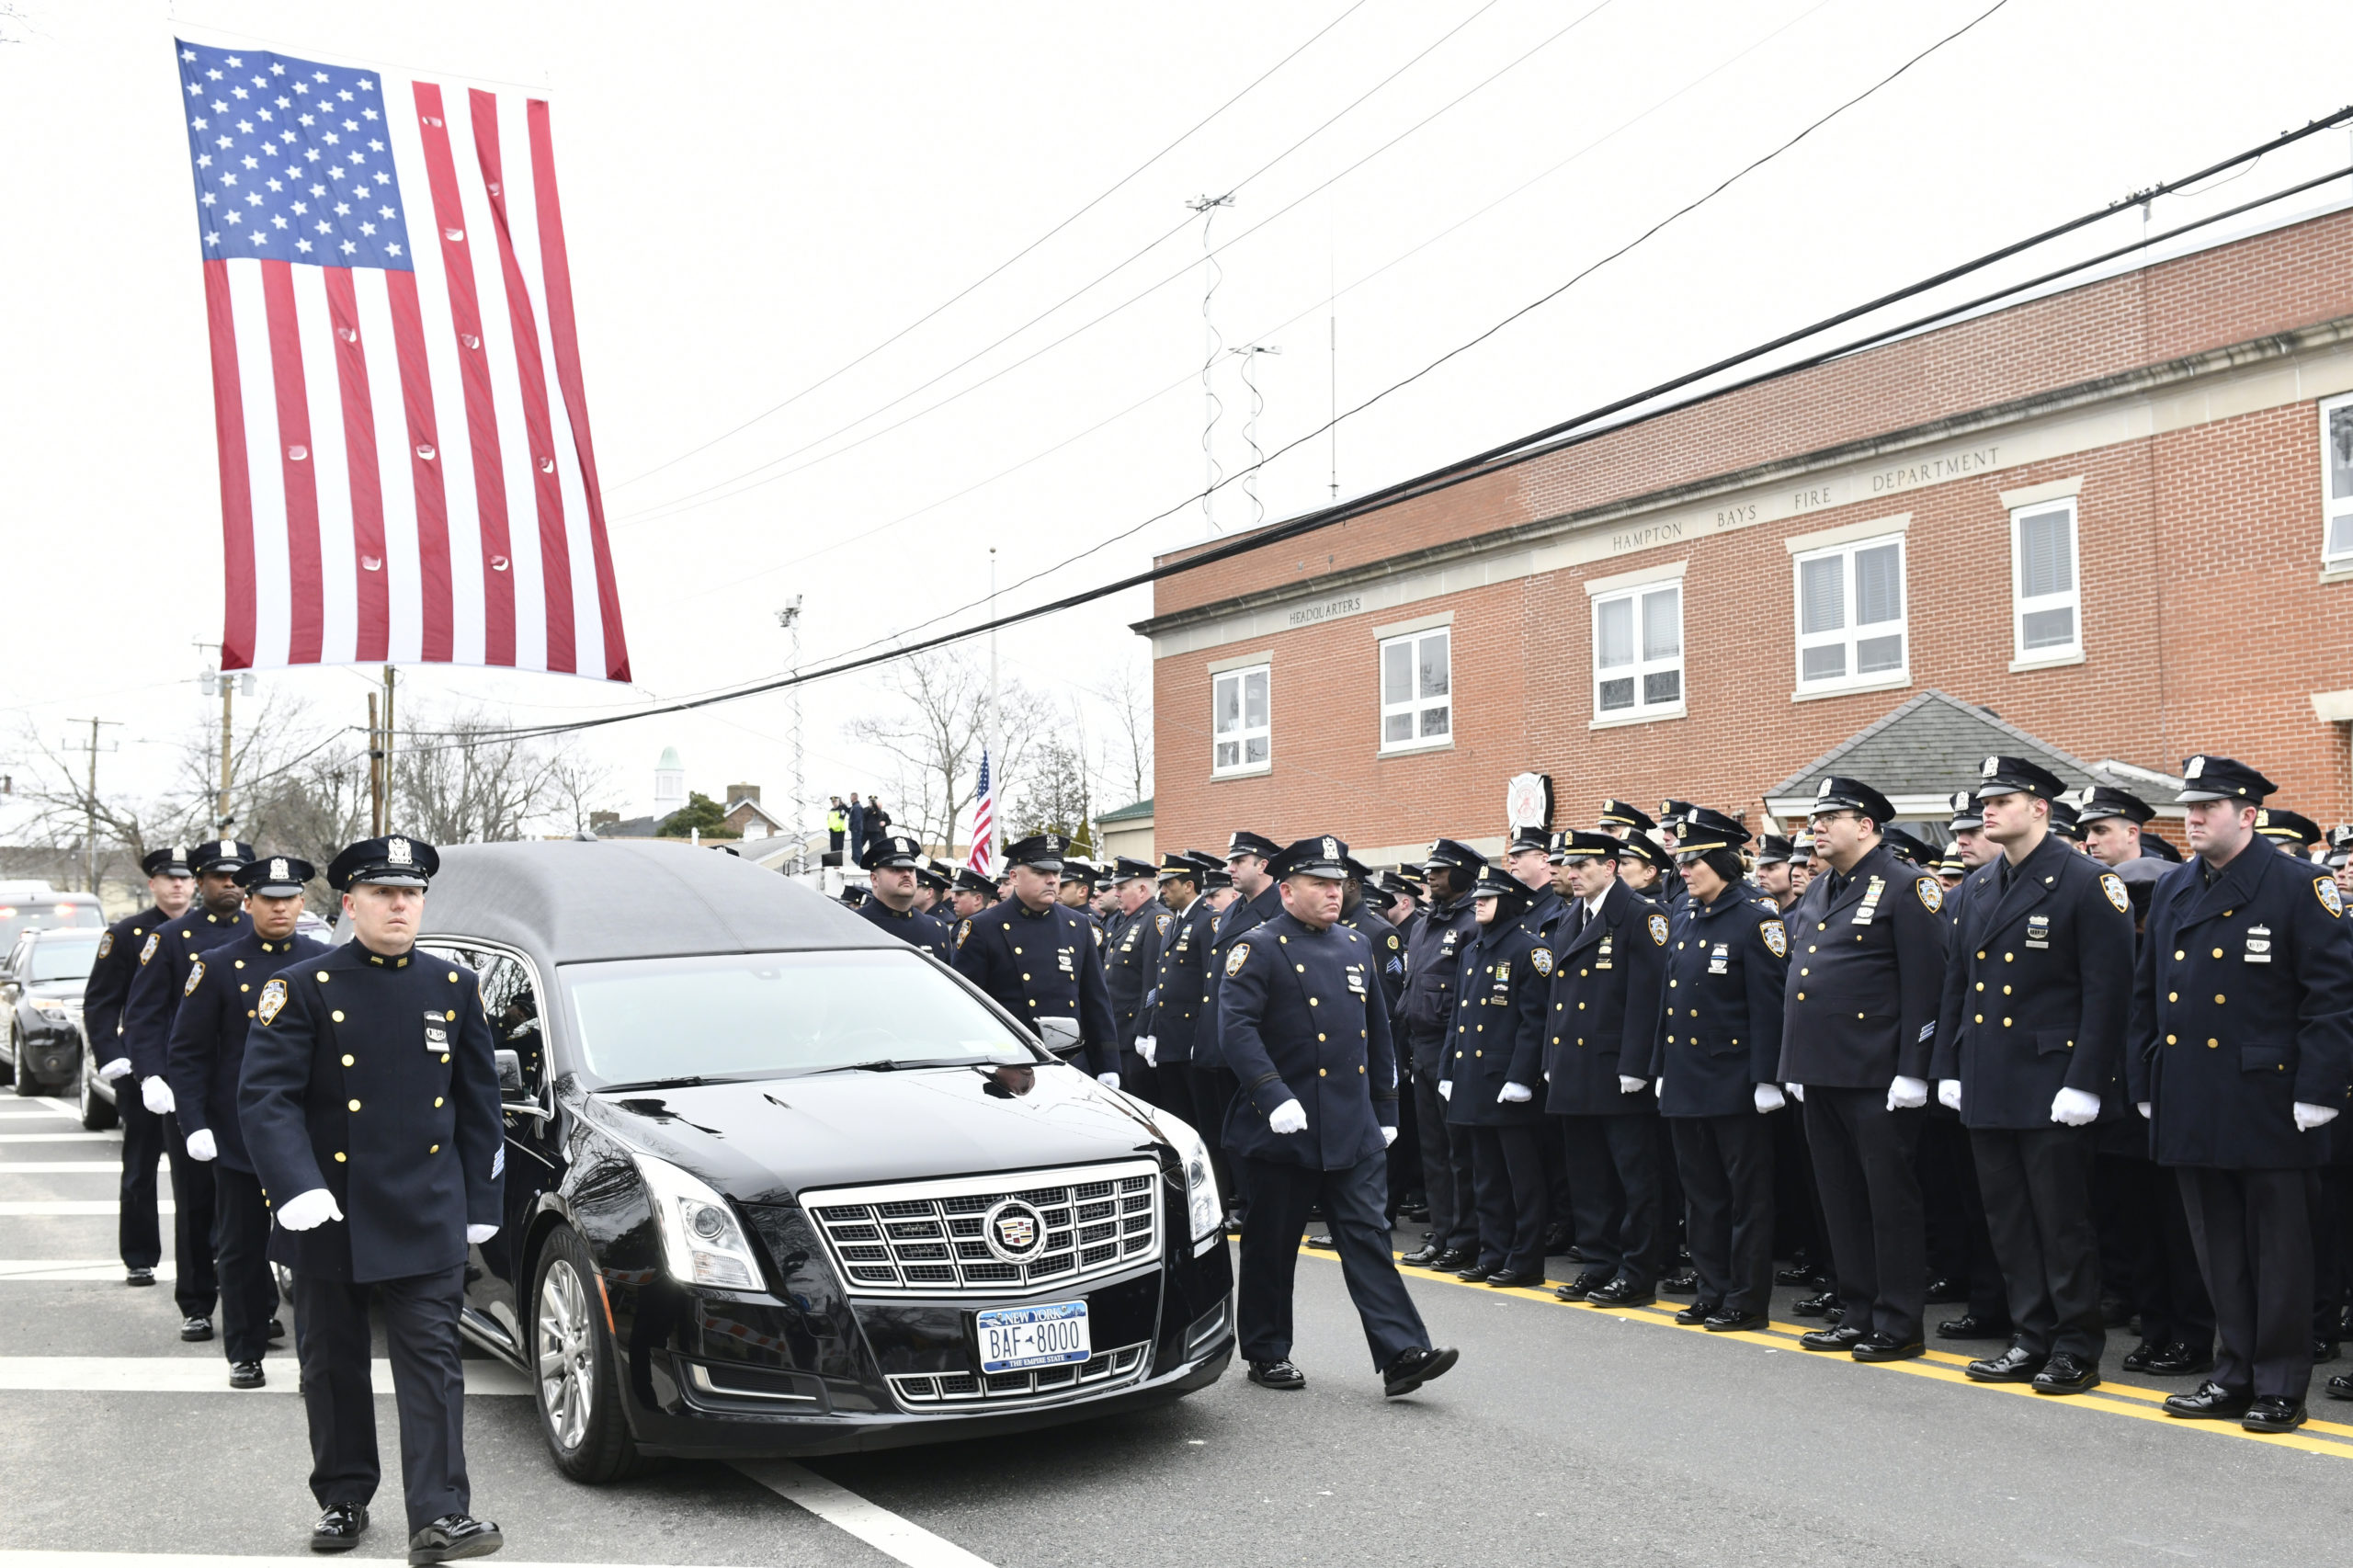 Paying Respect January 21 -- Hundreds of police officers from departments across the country turned out on Wednesday for the funeral of New York Police Department Detective Brian Simonsen, 42, a Calverton resident, at St. Rosalie's Church in Hampton Bays. Det. Simonsen was killed on February 12 when he and six other officers responded to an armed robbery in Queens.